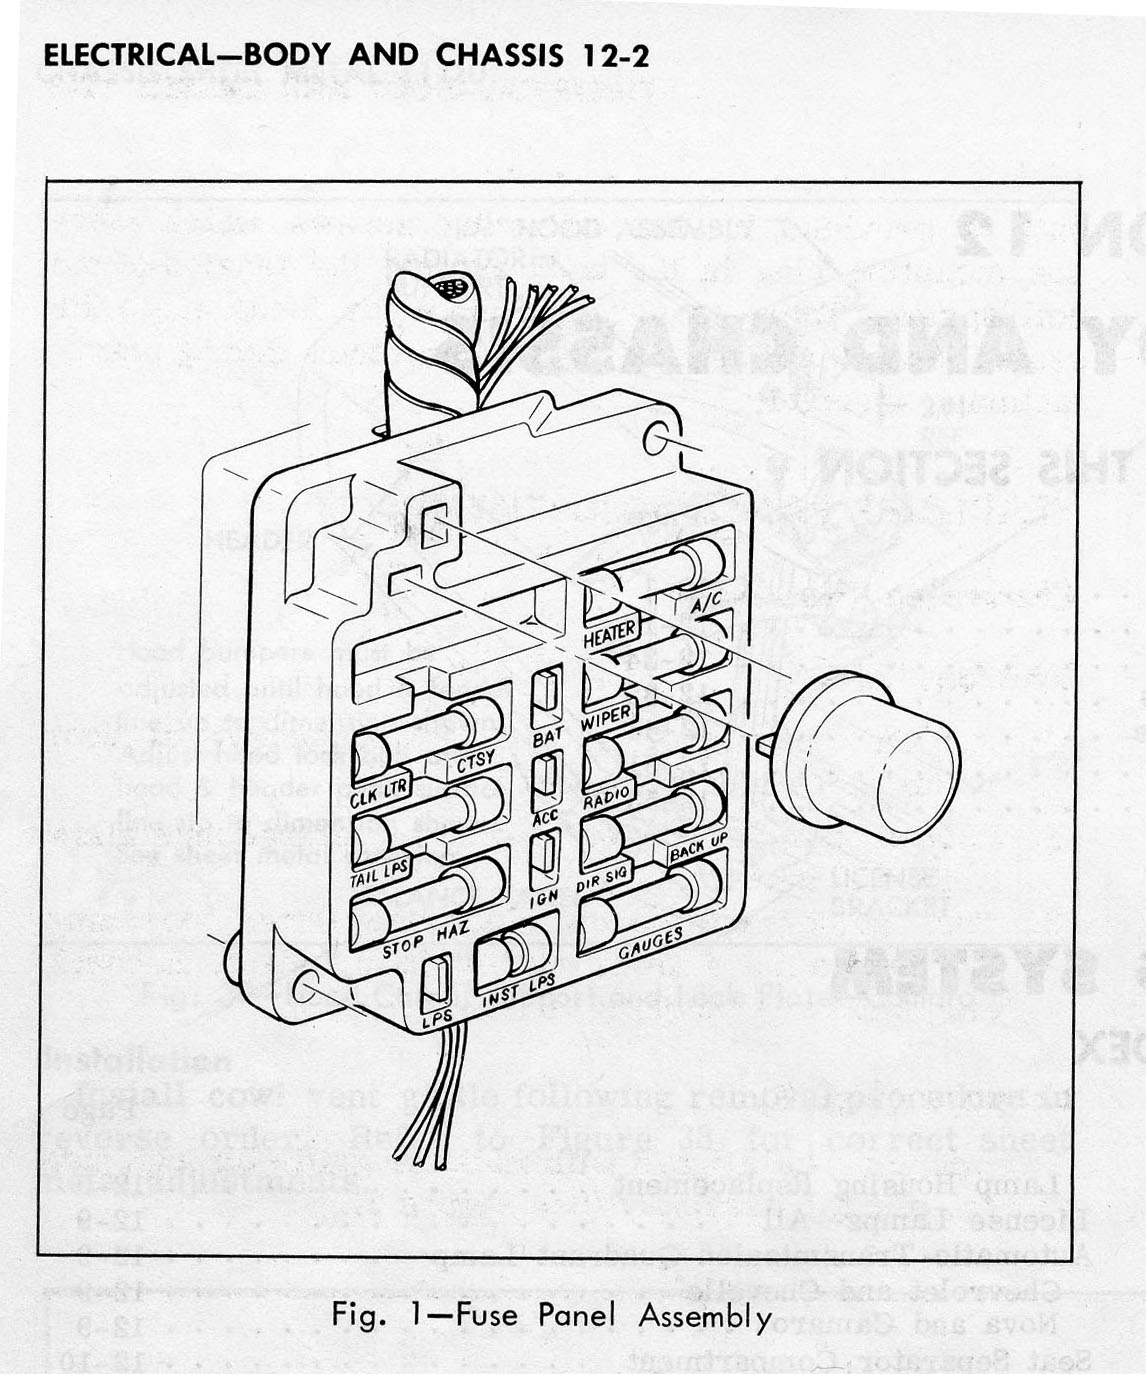 76 corvette air conditioning diagram  76  get free image about wiring diagram